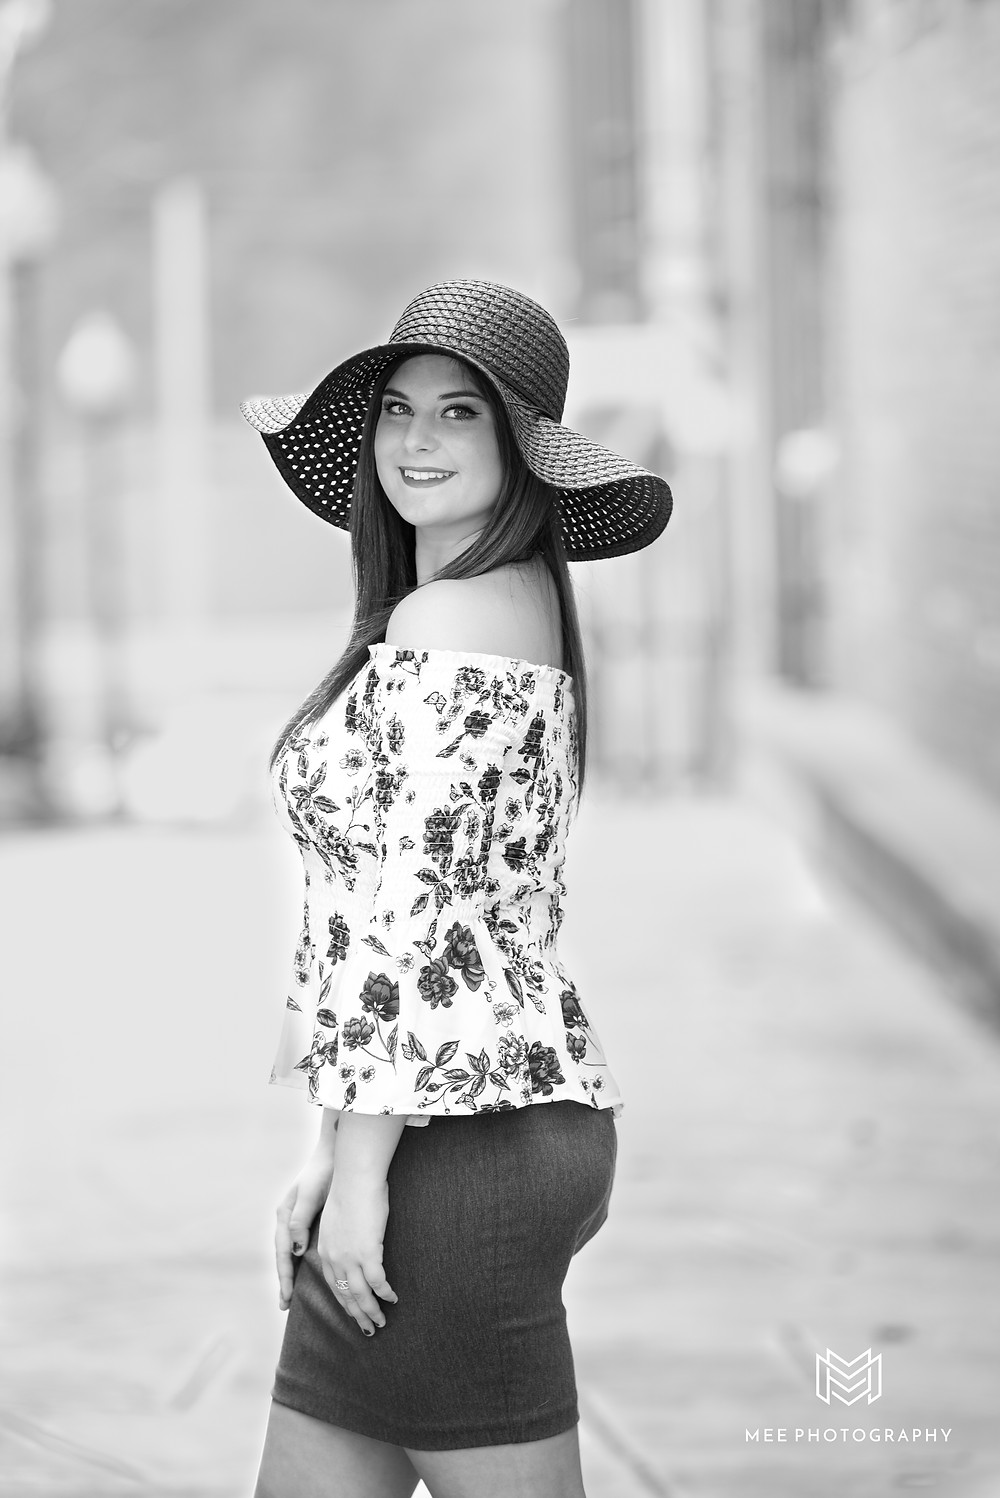 Black and white photo of a girl posing for her senior pictures wearing a black floppy hat.